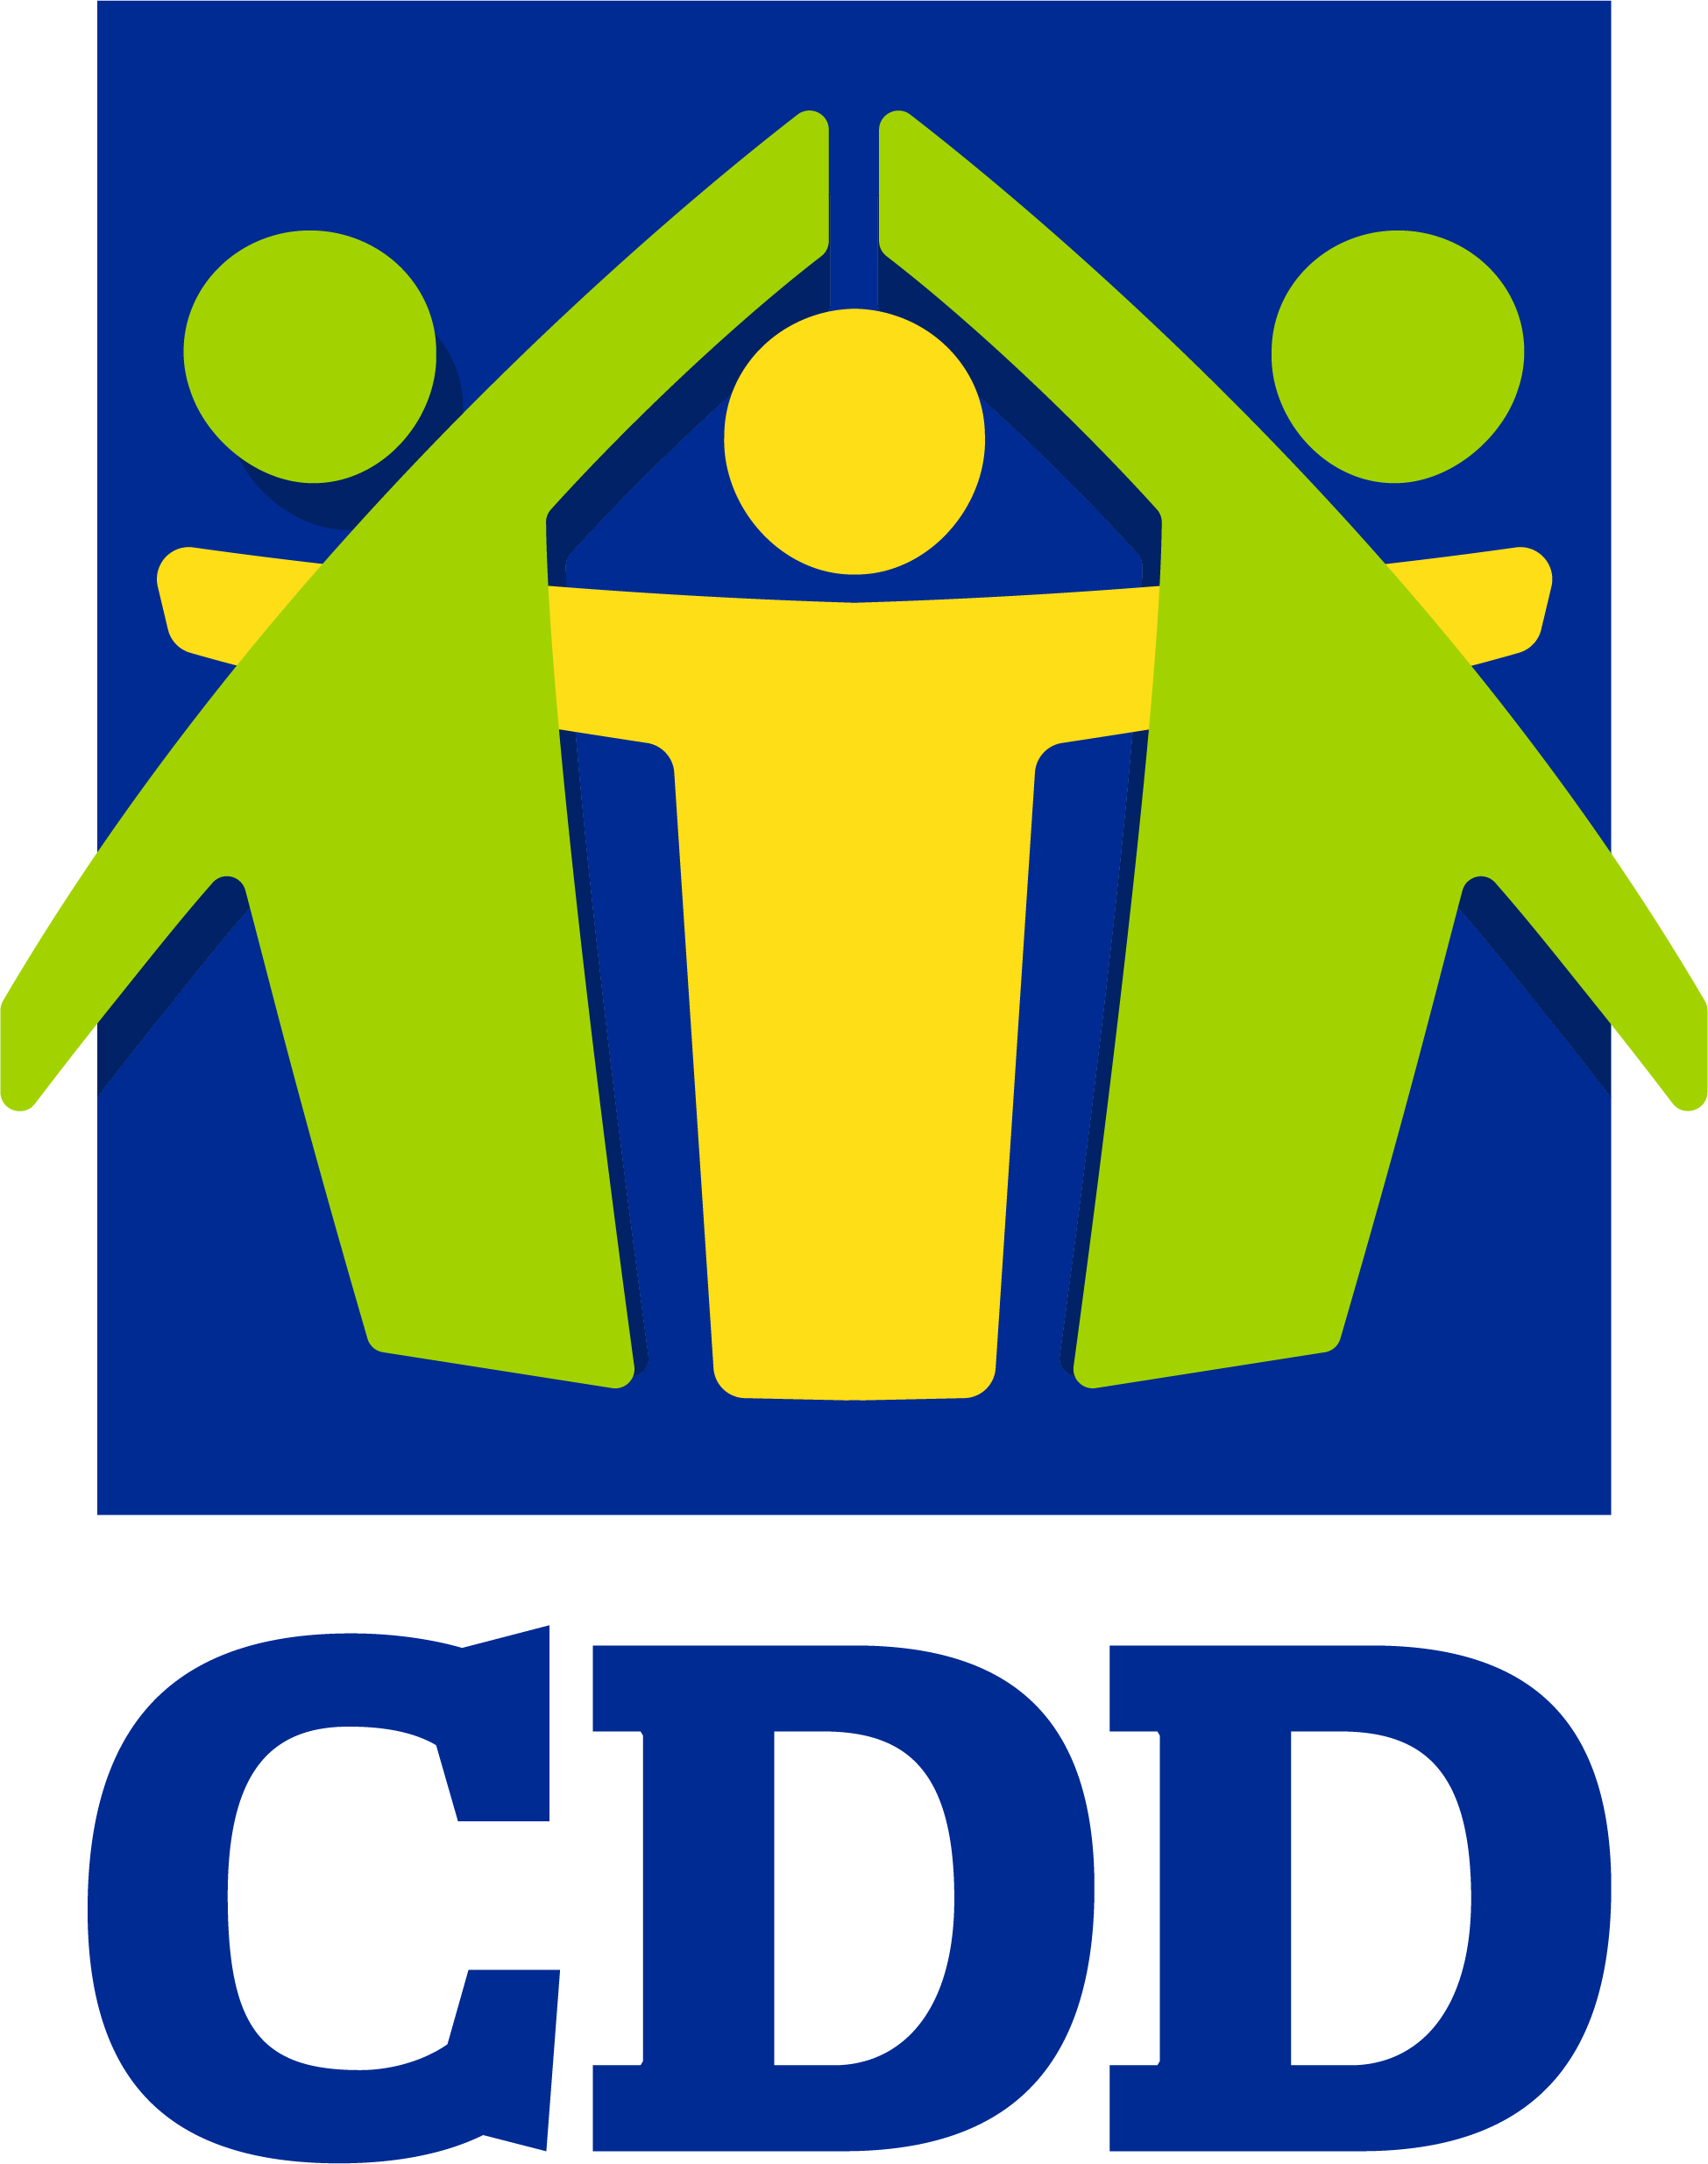 Center for Developmentally Disabled